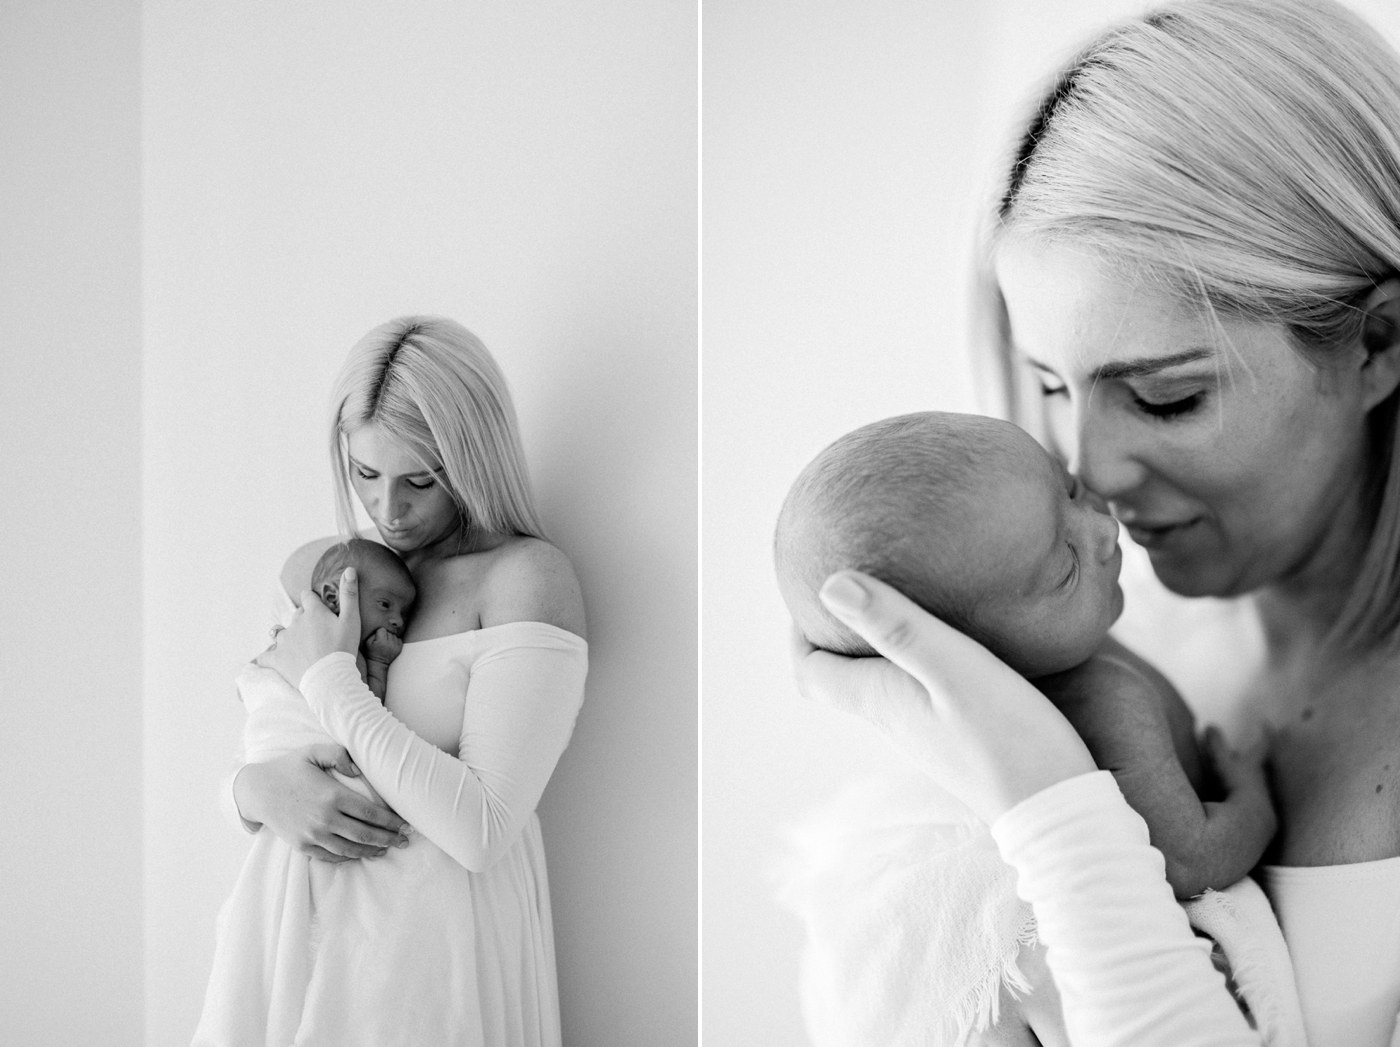 Baby Leo - Natural Newborn Photography in Adelaide - Simple and Beautiful Newborn Photography - Katherine Schultz - Natural Light Newborn Photographer in Adelaide - www.katherineschultzphotography.com_0020.jpg